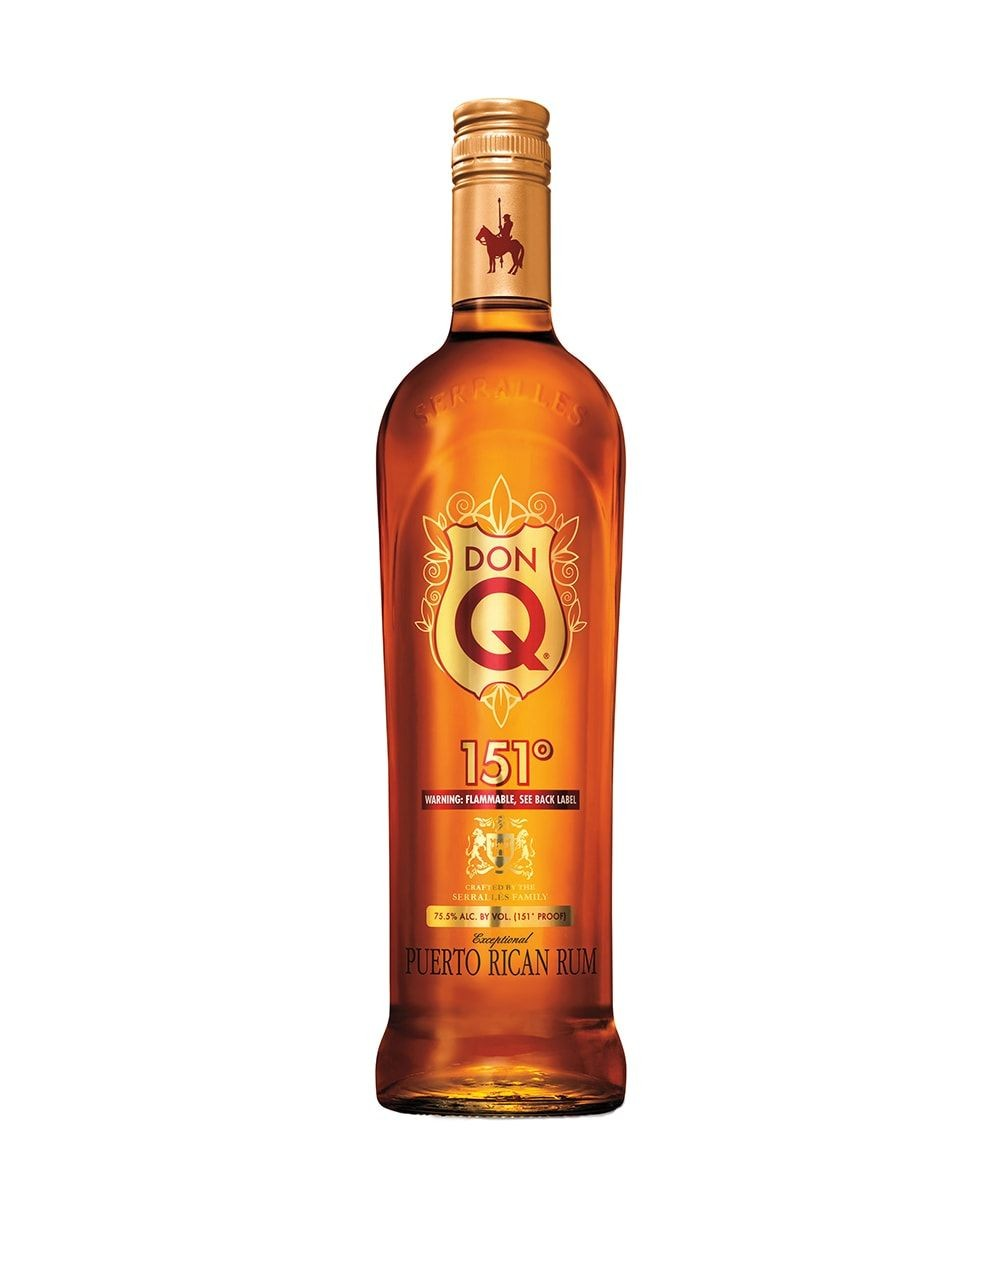 Don Q 151 Rum Buy Online Or Send As A Gift Reservebar